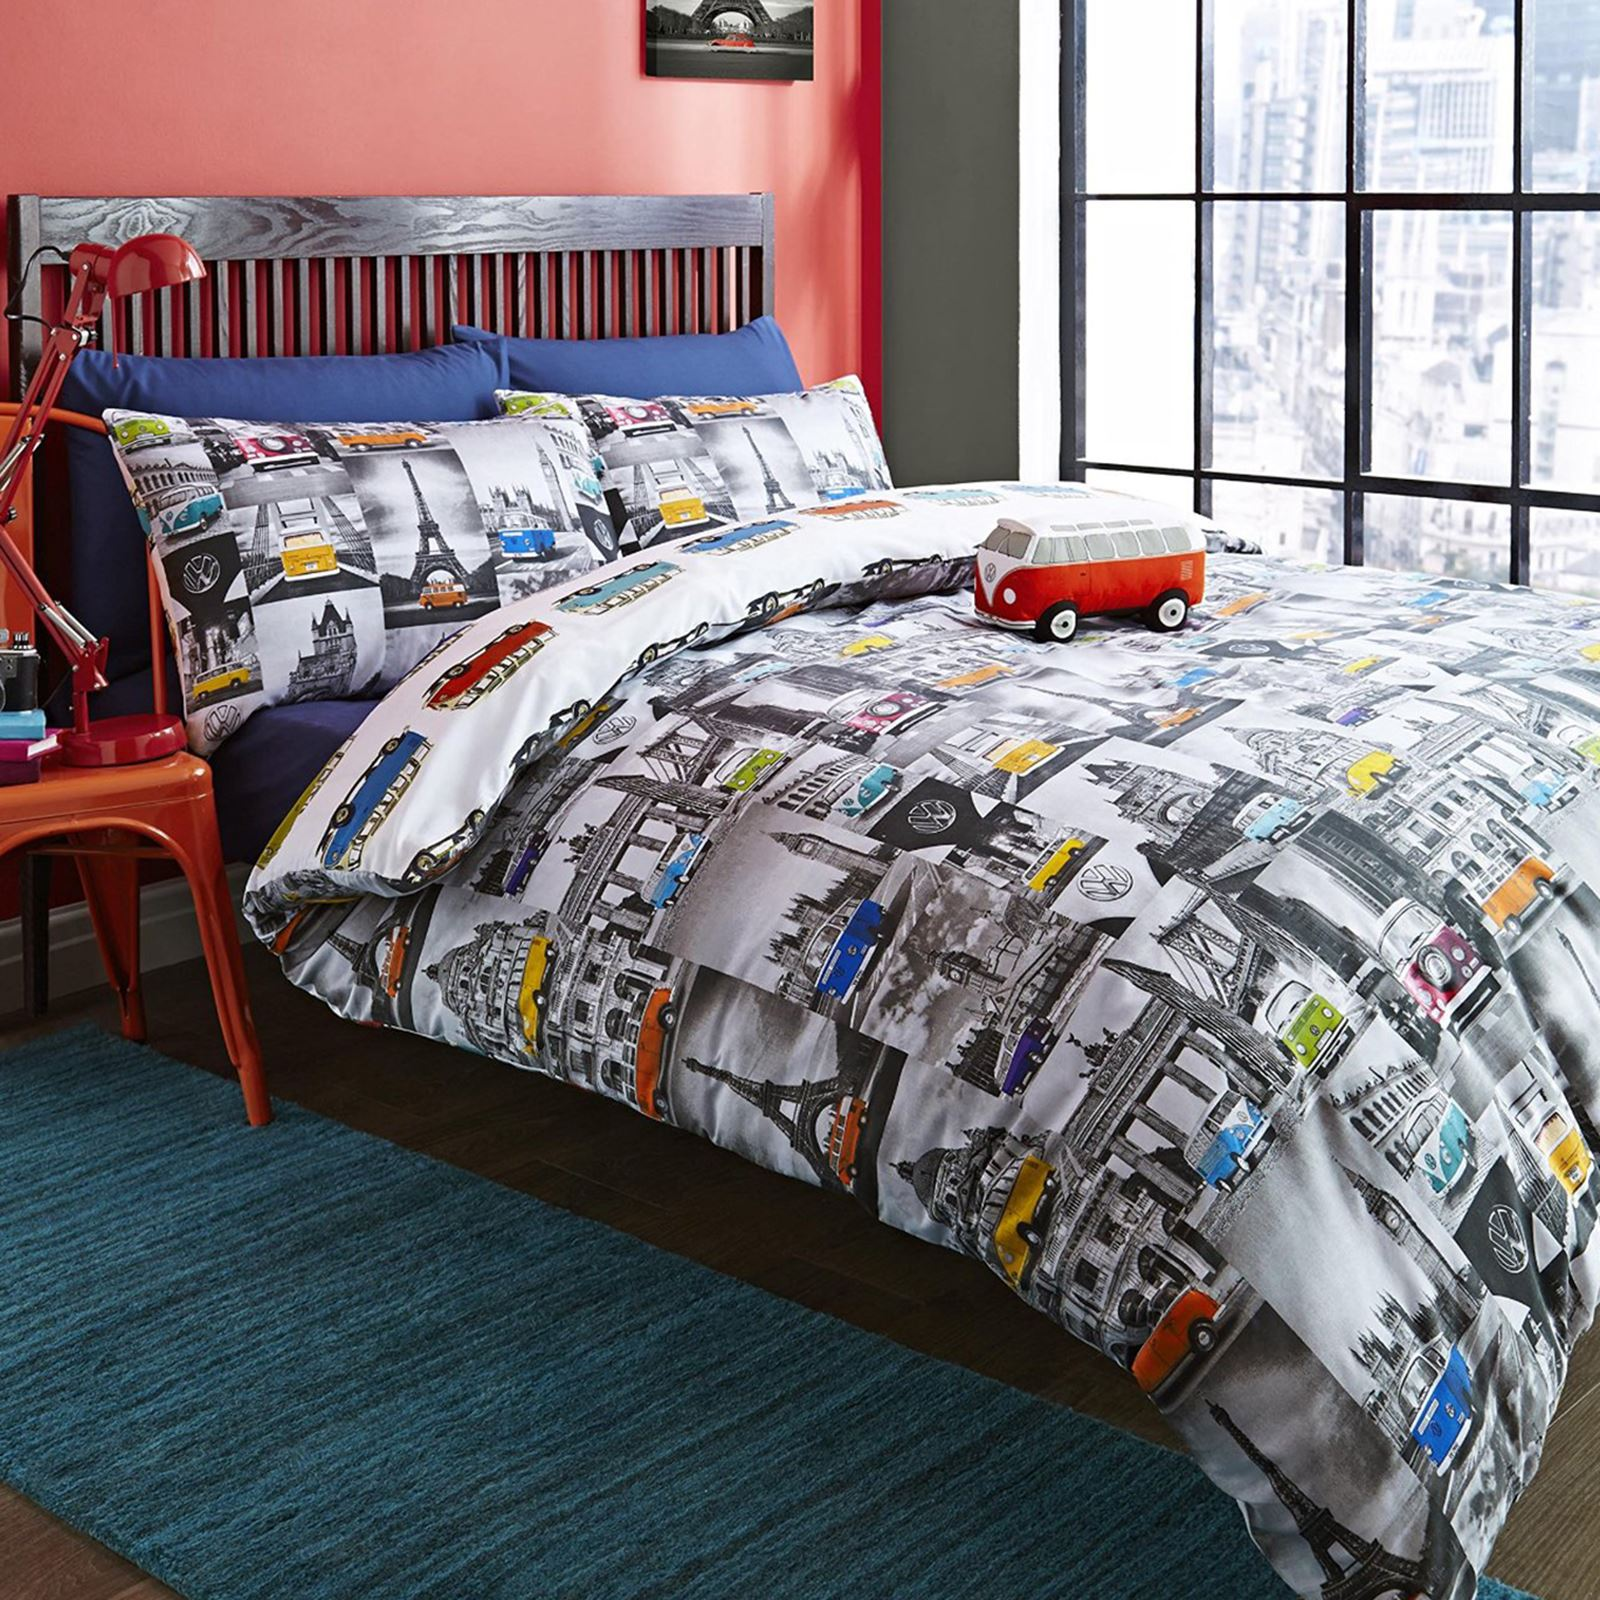 CLOTHKNOW Boys Duvet Cover Sets Full/Queen Grey Geometric Pattern Reversible Grid Plaid Men's Bedding Cotton Gingham 3 Pieces - 1 Duvet Cover Zipper Closure + 2 Pillowcases NO Insert. by CLOTHKNOW. $ $ 54 99 Prime. FREE Shipping on eligible orders. Only 3 left in stock - order soon.